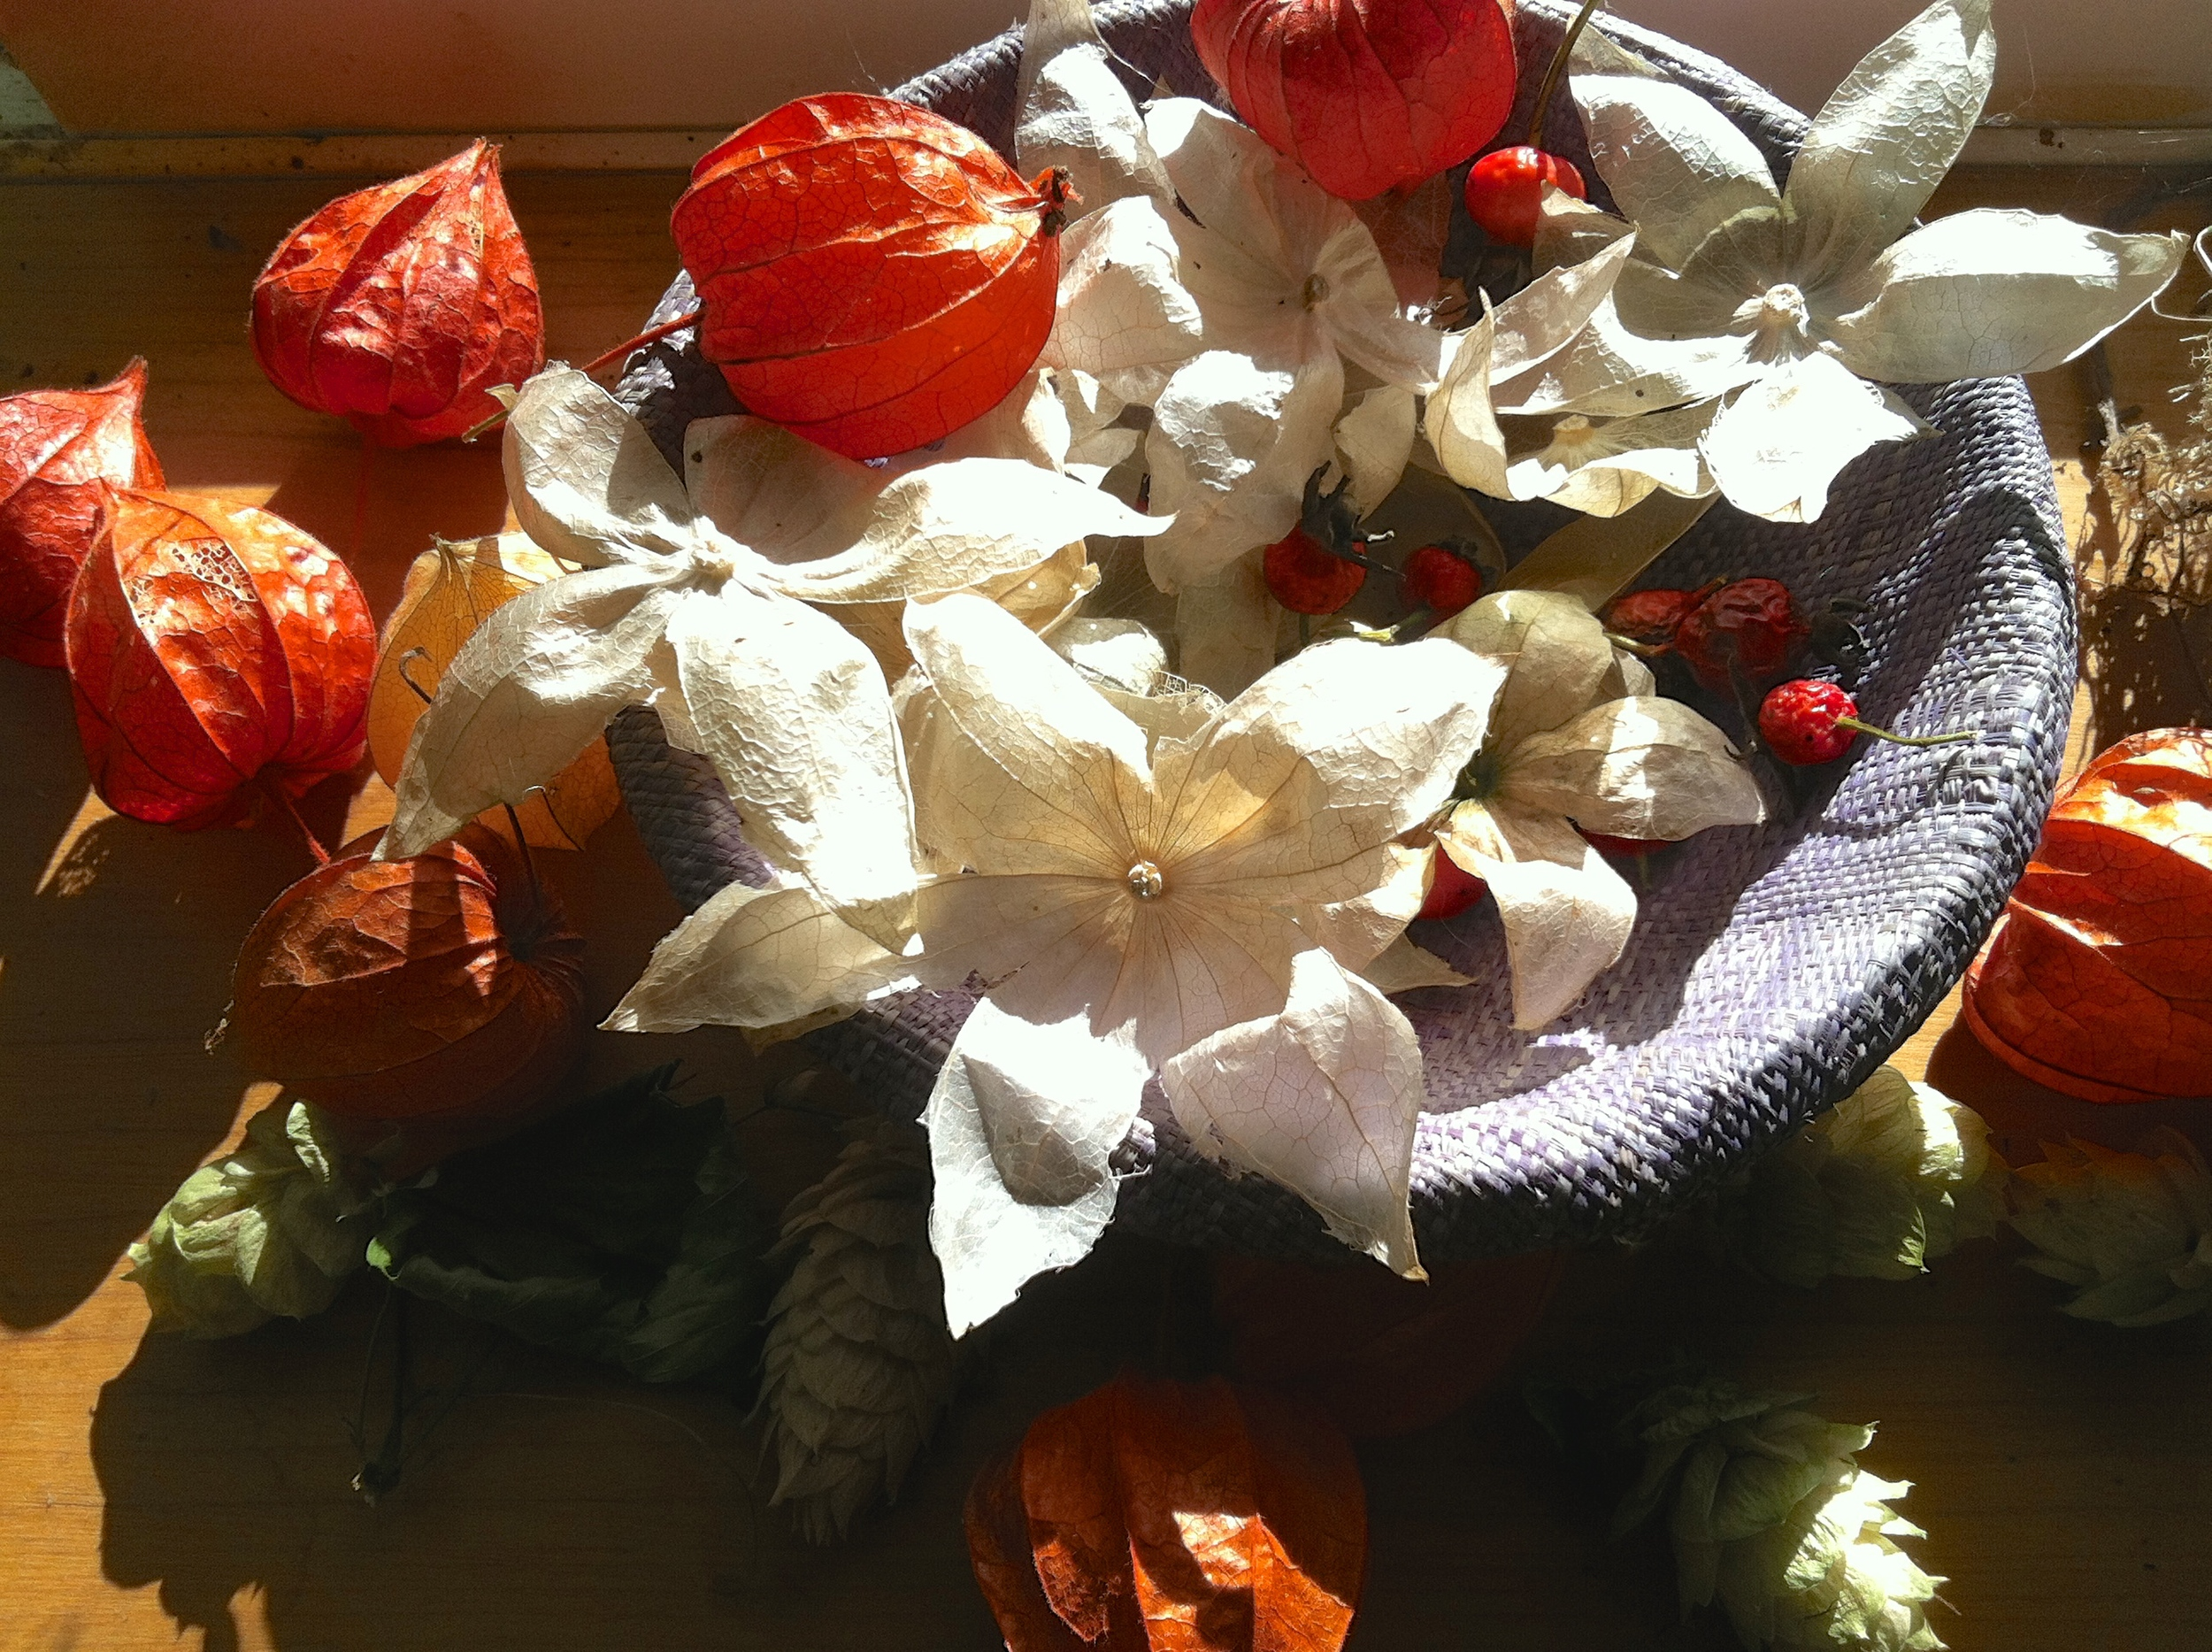 Fall gleanings to feed my inner child